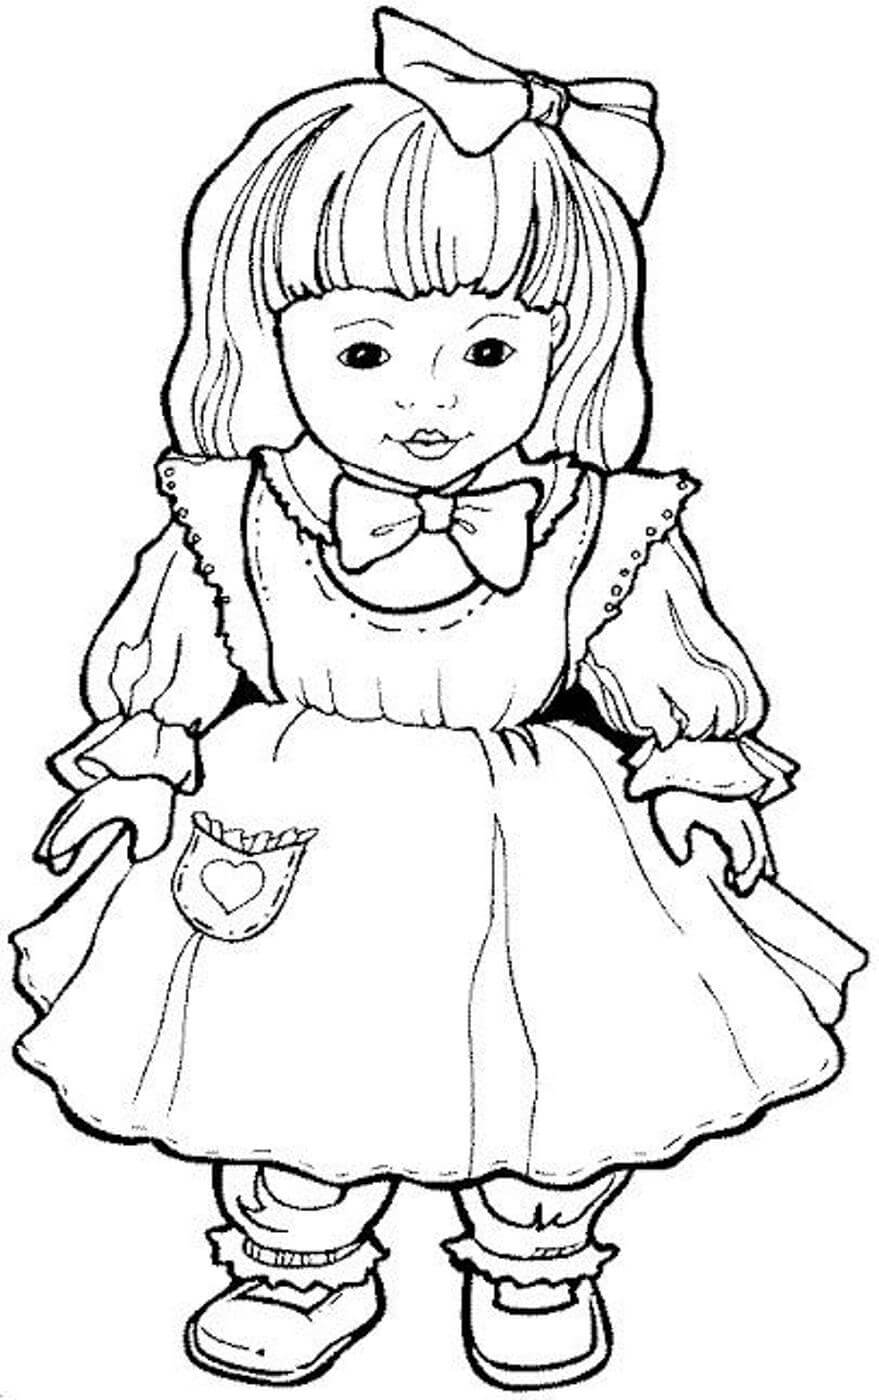 american girl doll coloring page coloring pages american girl dolls free coloring pages for girl page american coloring doll